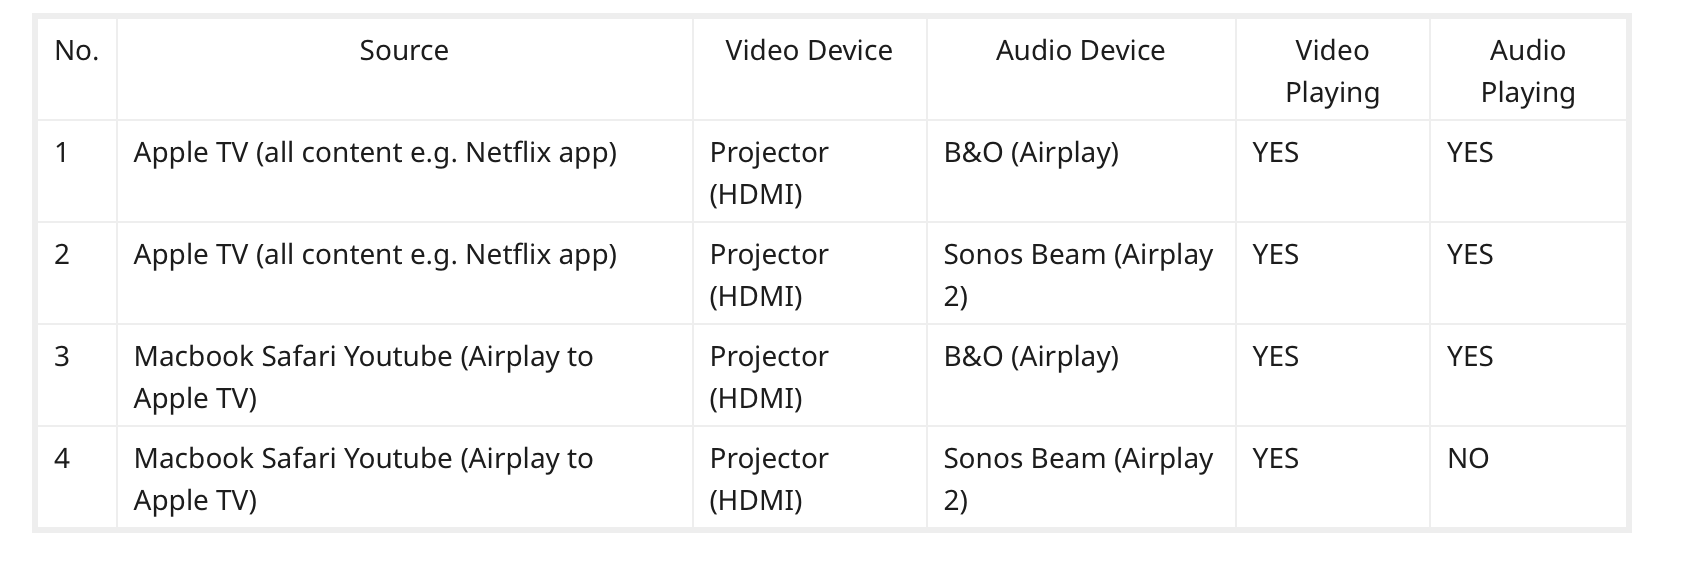 No Audio when streaming via Airplay to Apple TV to Beam via